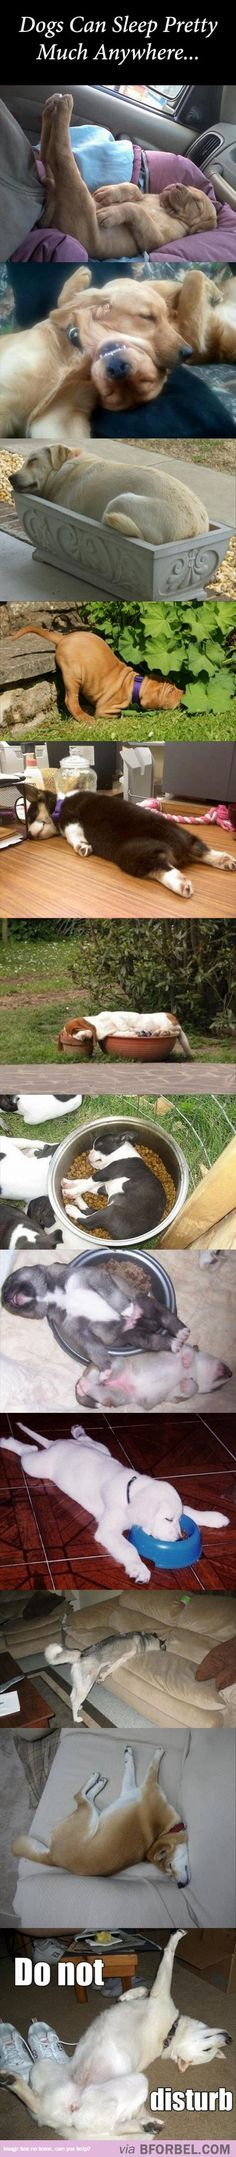 Dogs - they can sleep anywhere ...